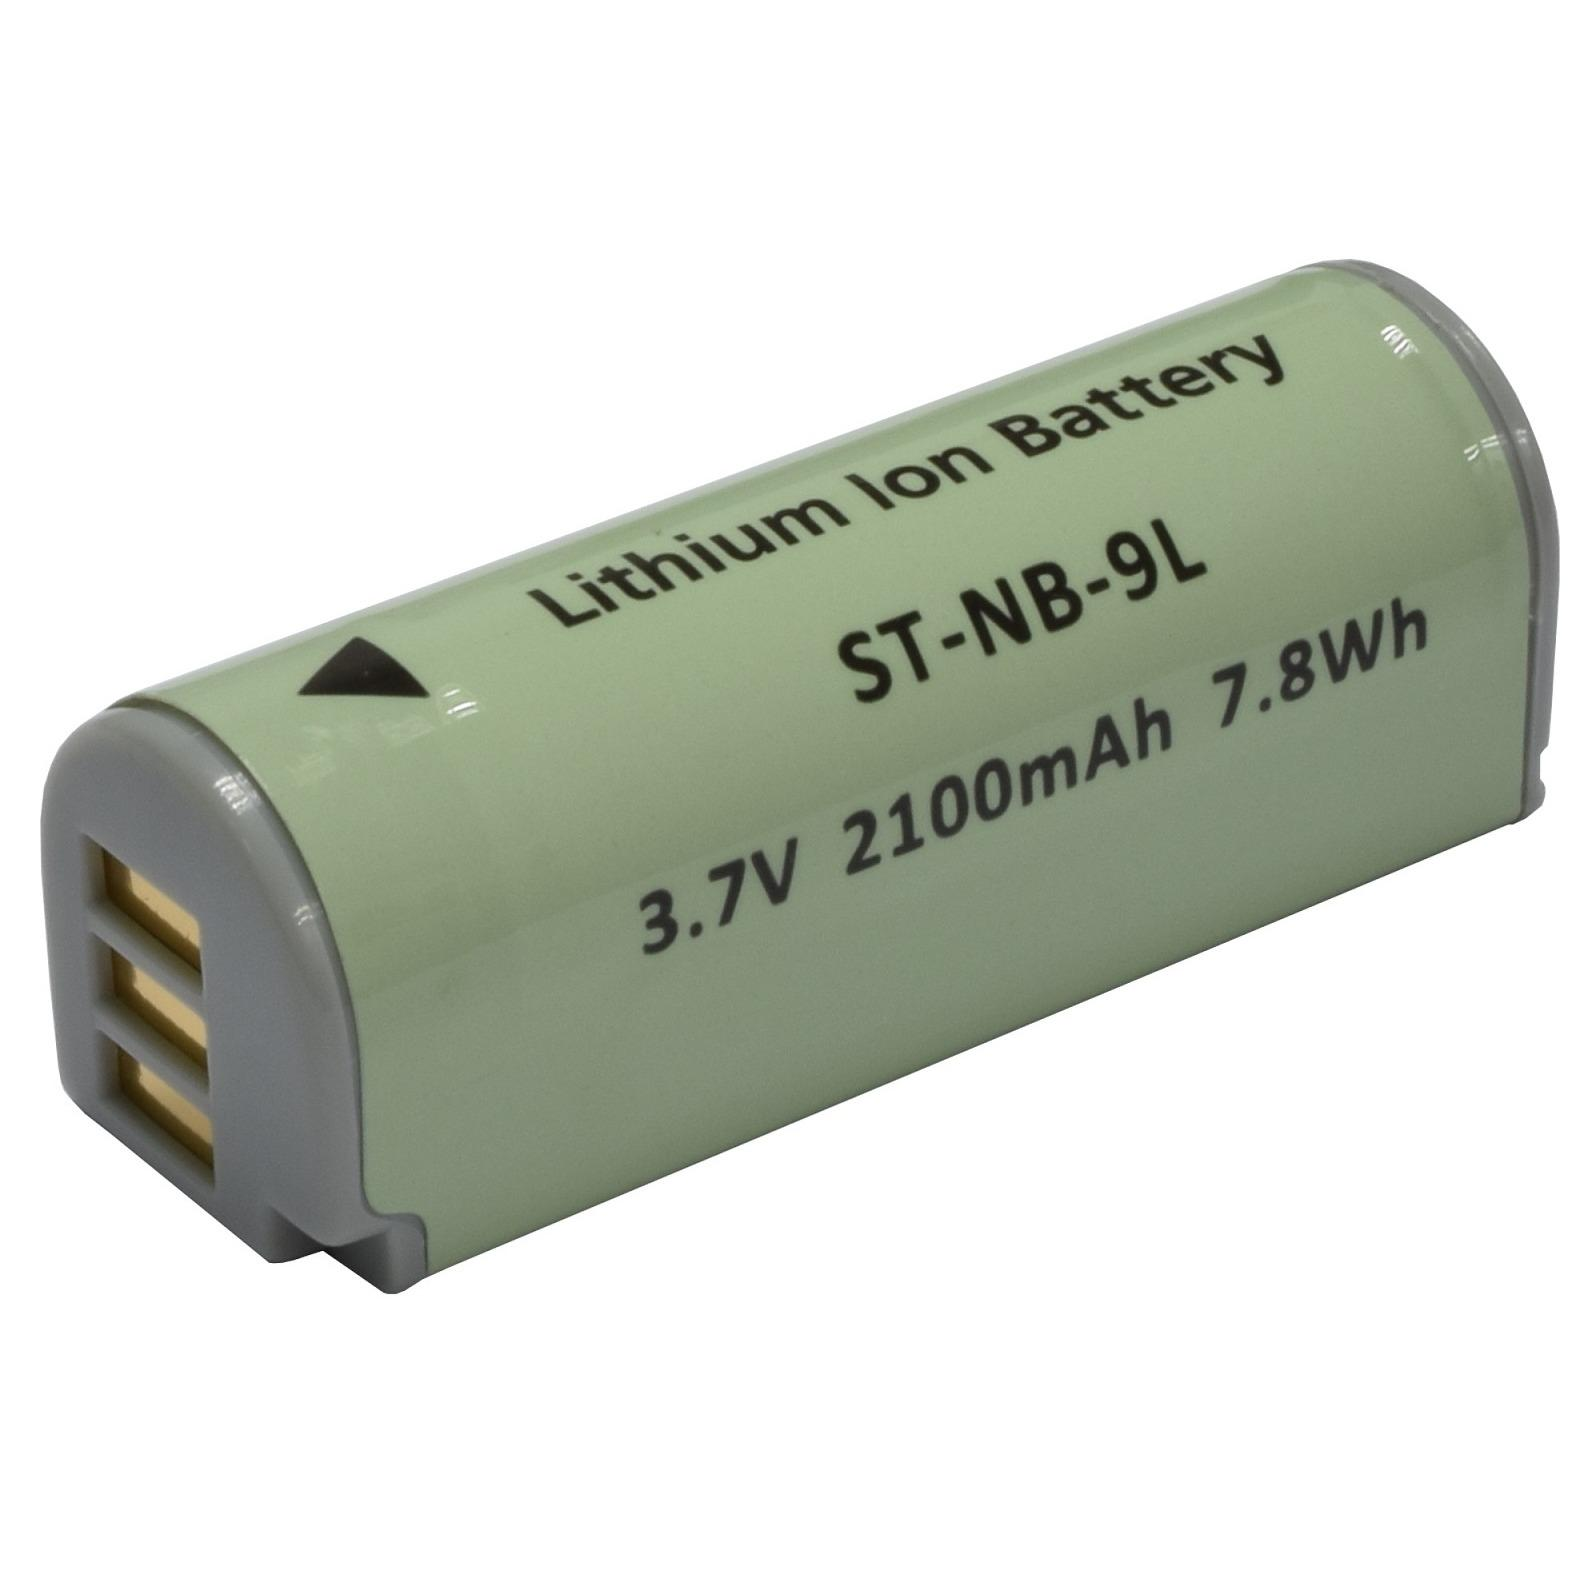 I Discovery St Nb 9L Canon Digital Camera Battery Pack For Ixus 1000Hs Ixus 1100Hs Ixus 510Hs Powershot N N2 Shop